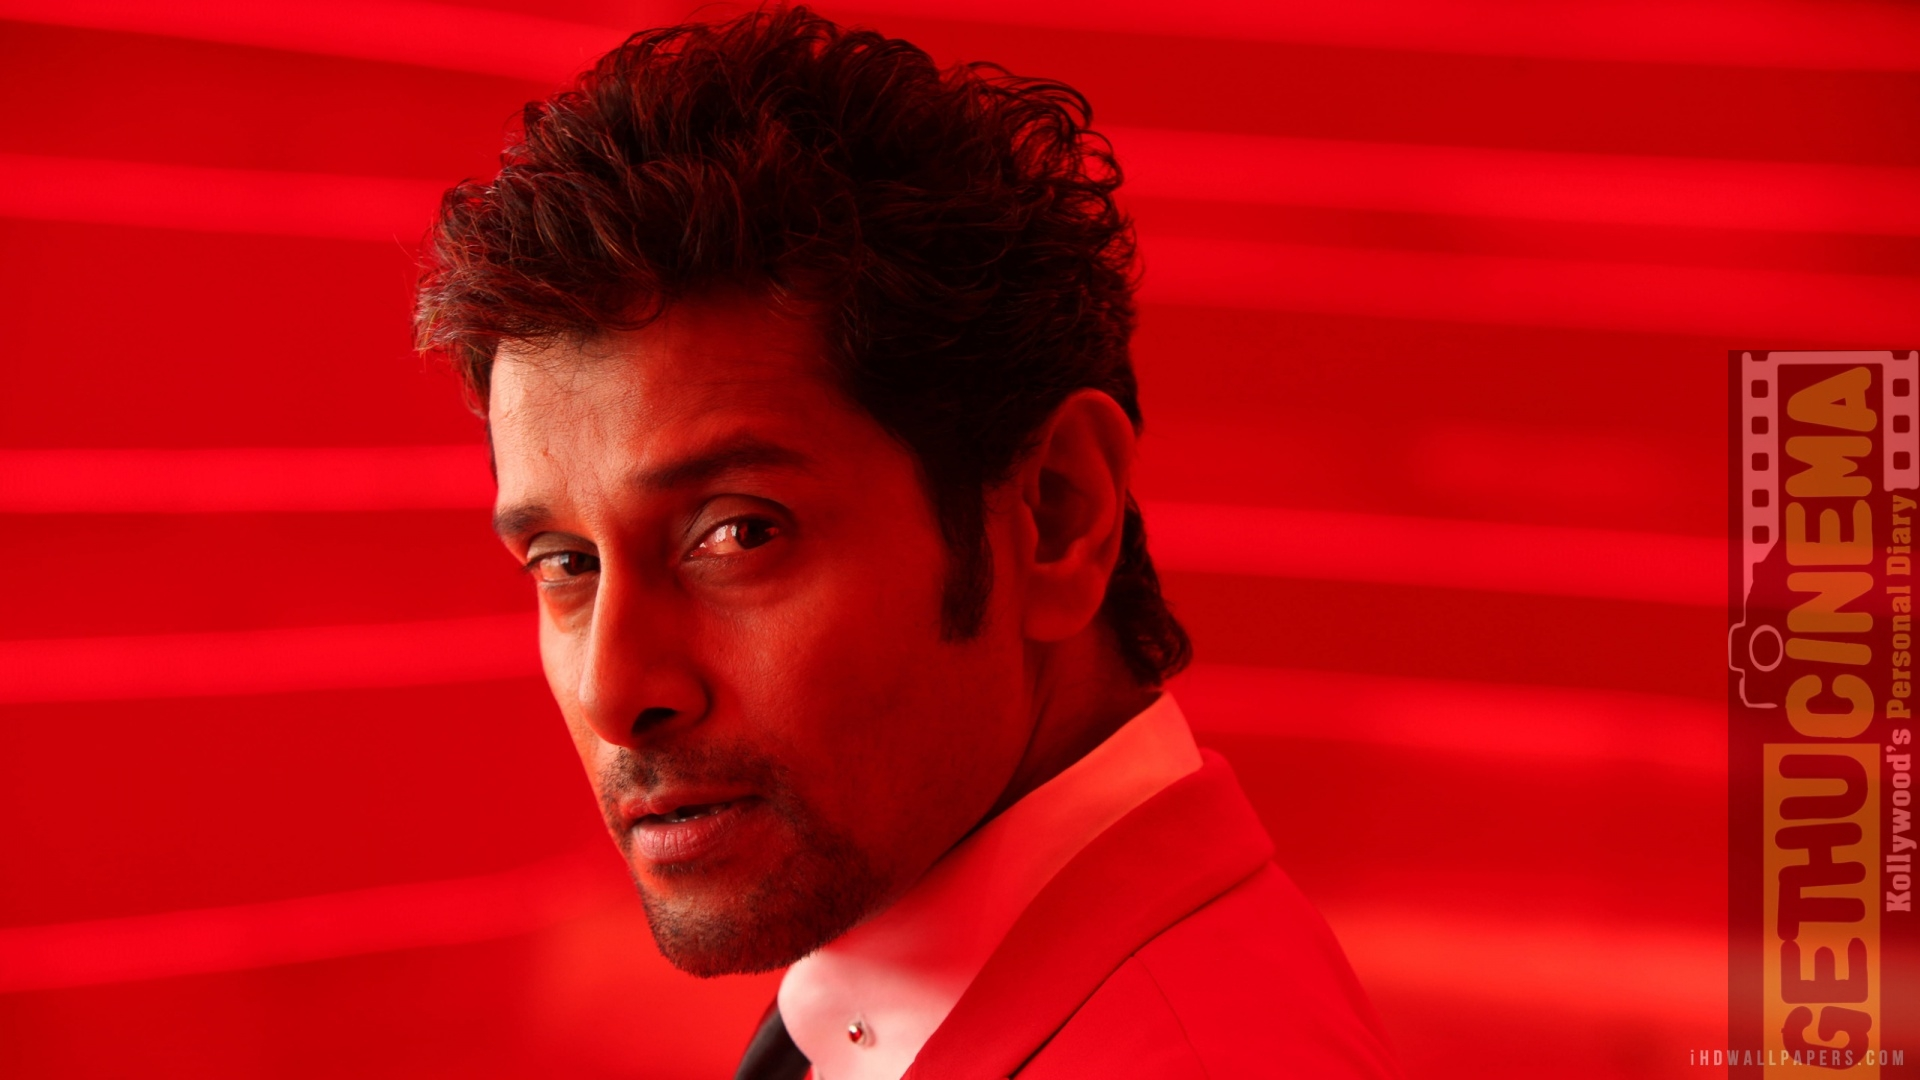 vikram_in_manoharudu-1920x1080